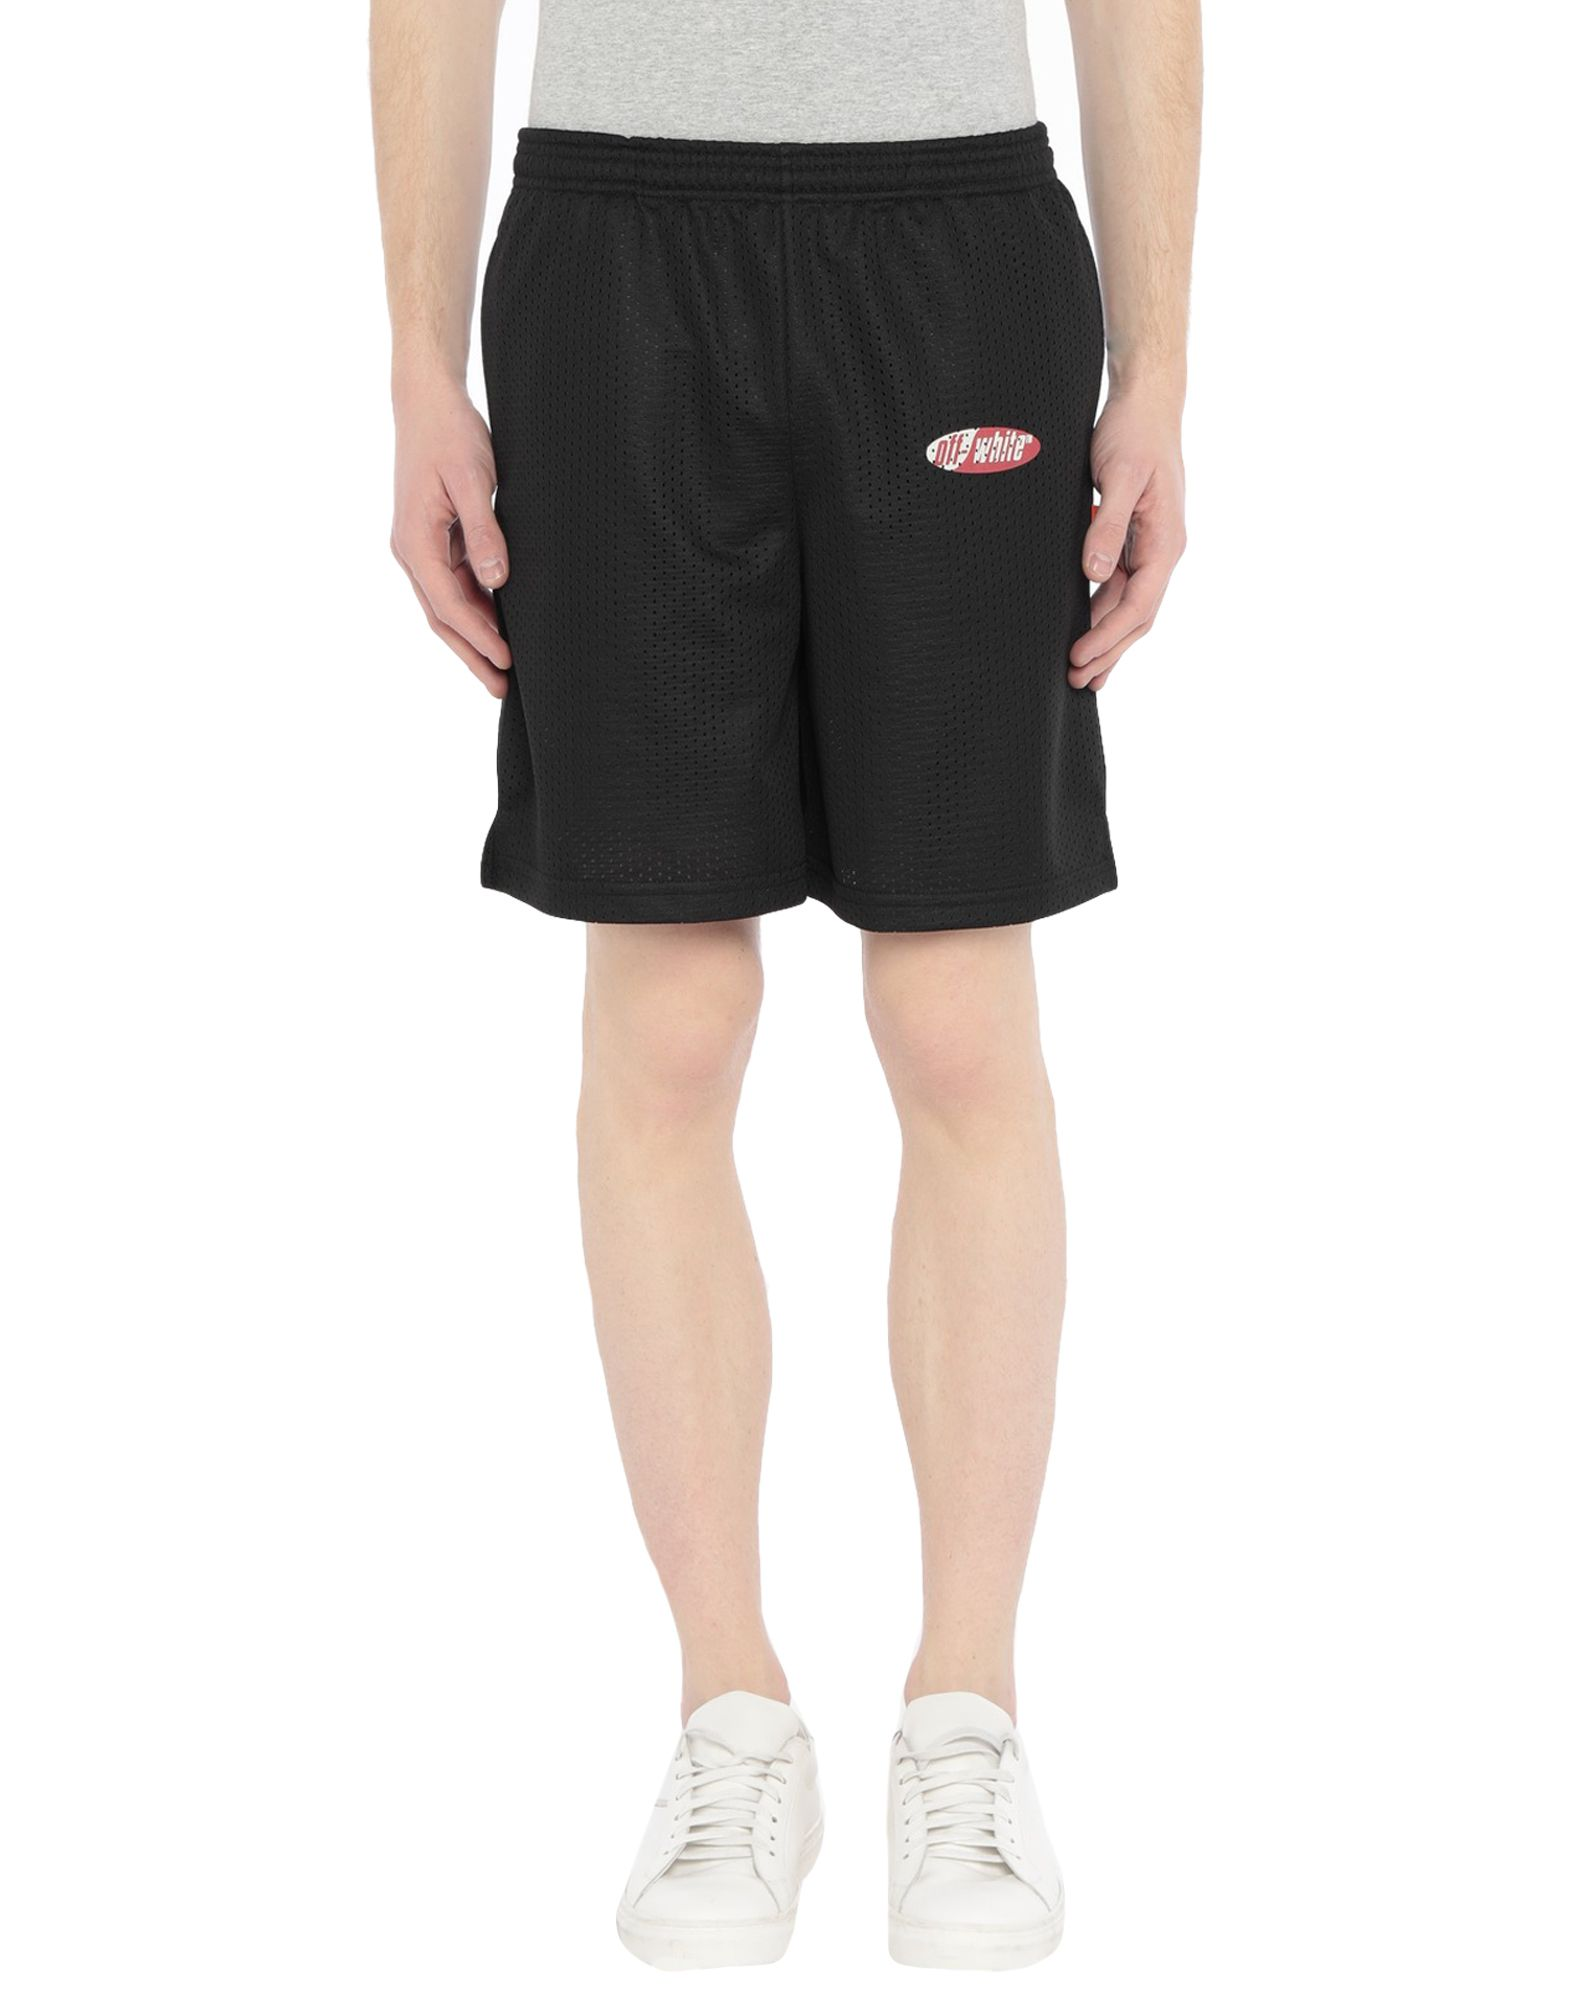 OFF-WHITE™ Bermudas. jersey, print, logo, solid color, mid rise, comfort fit, drawstring closure, multipockets. 100% Polyester